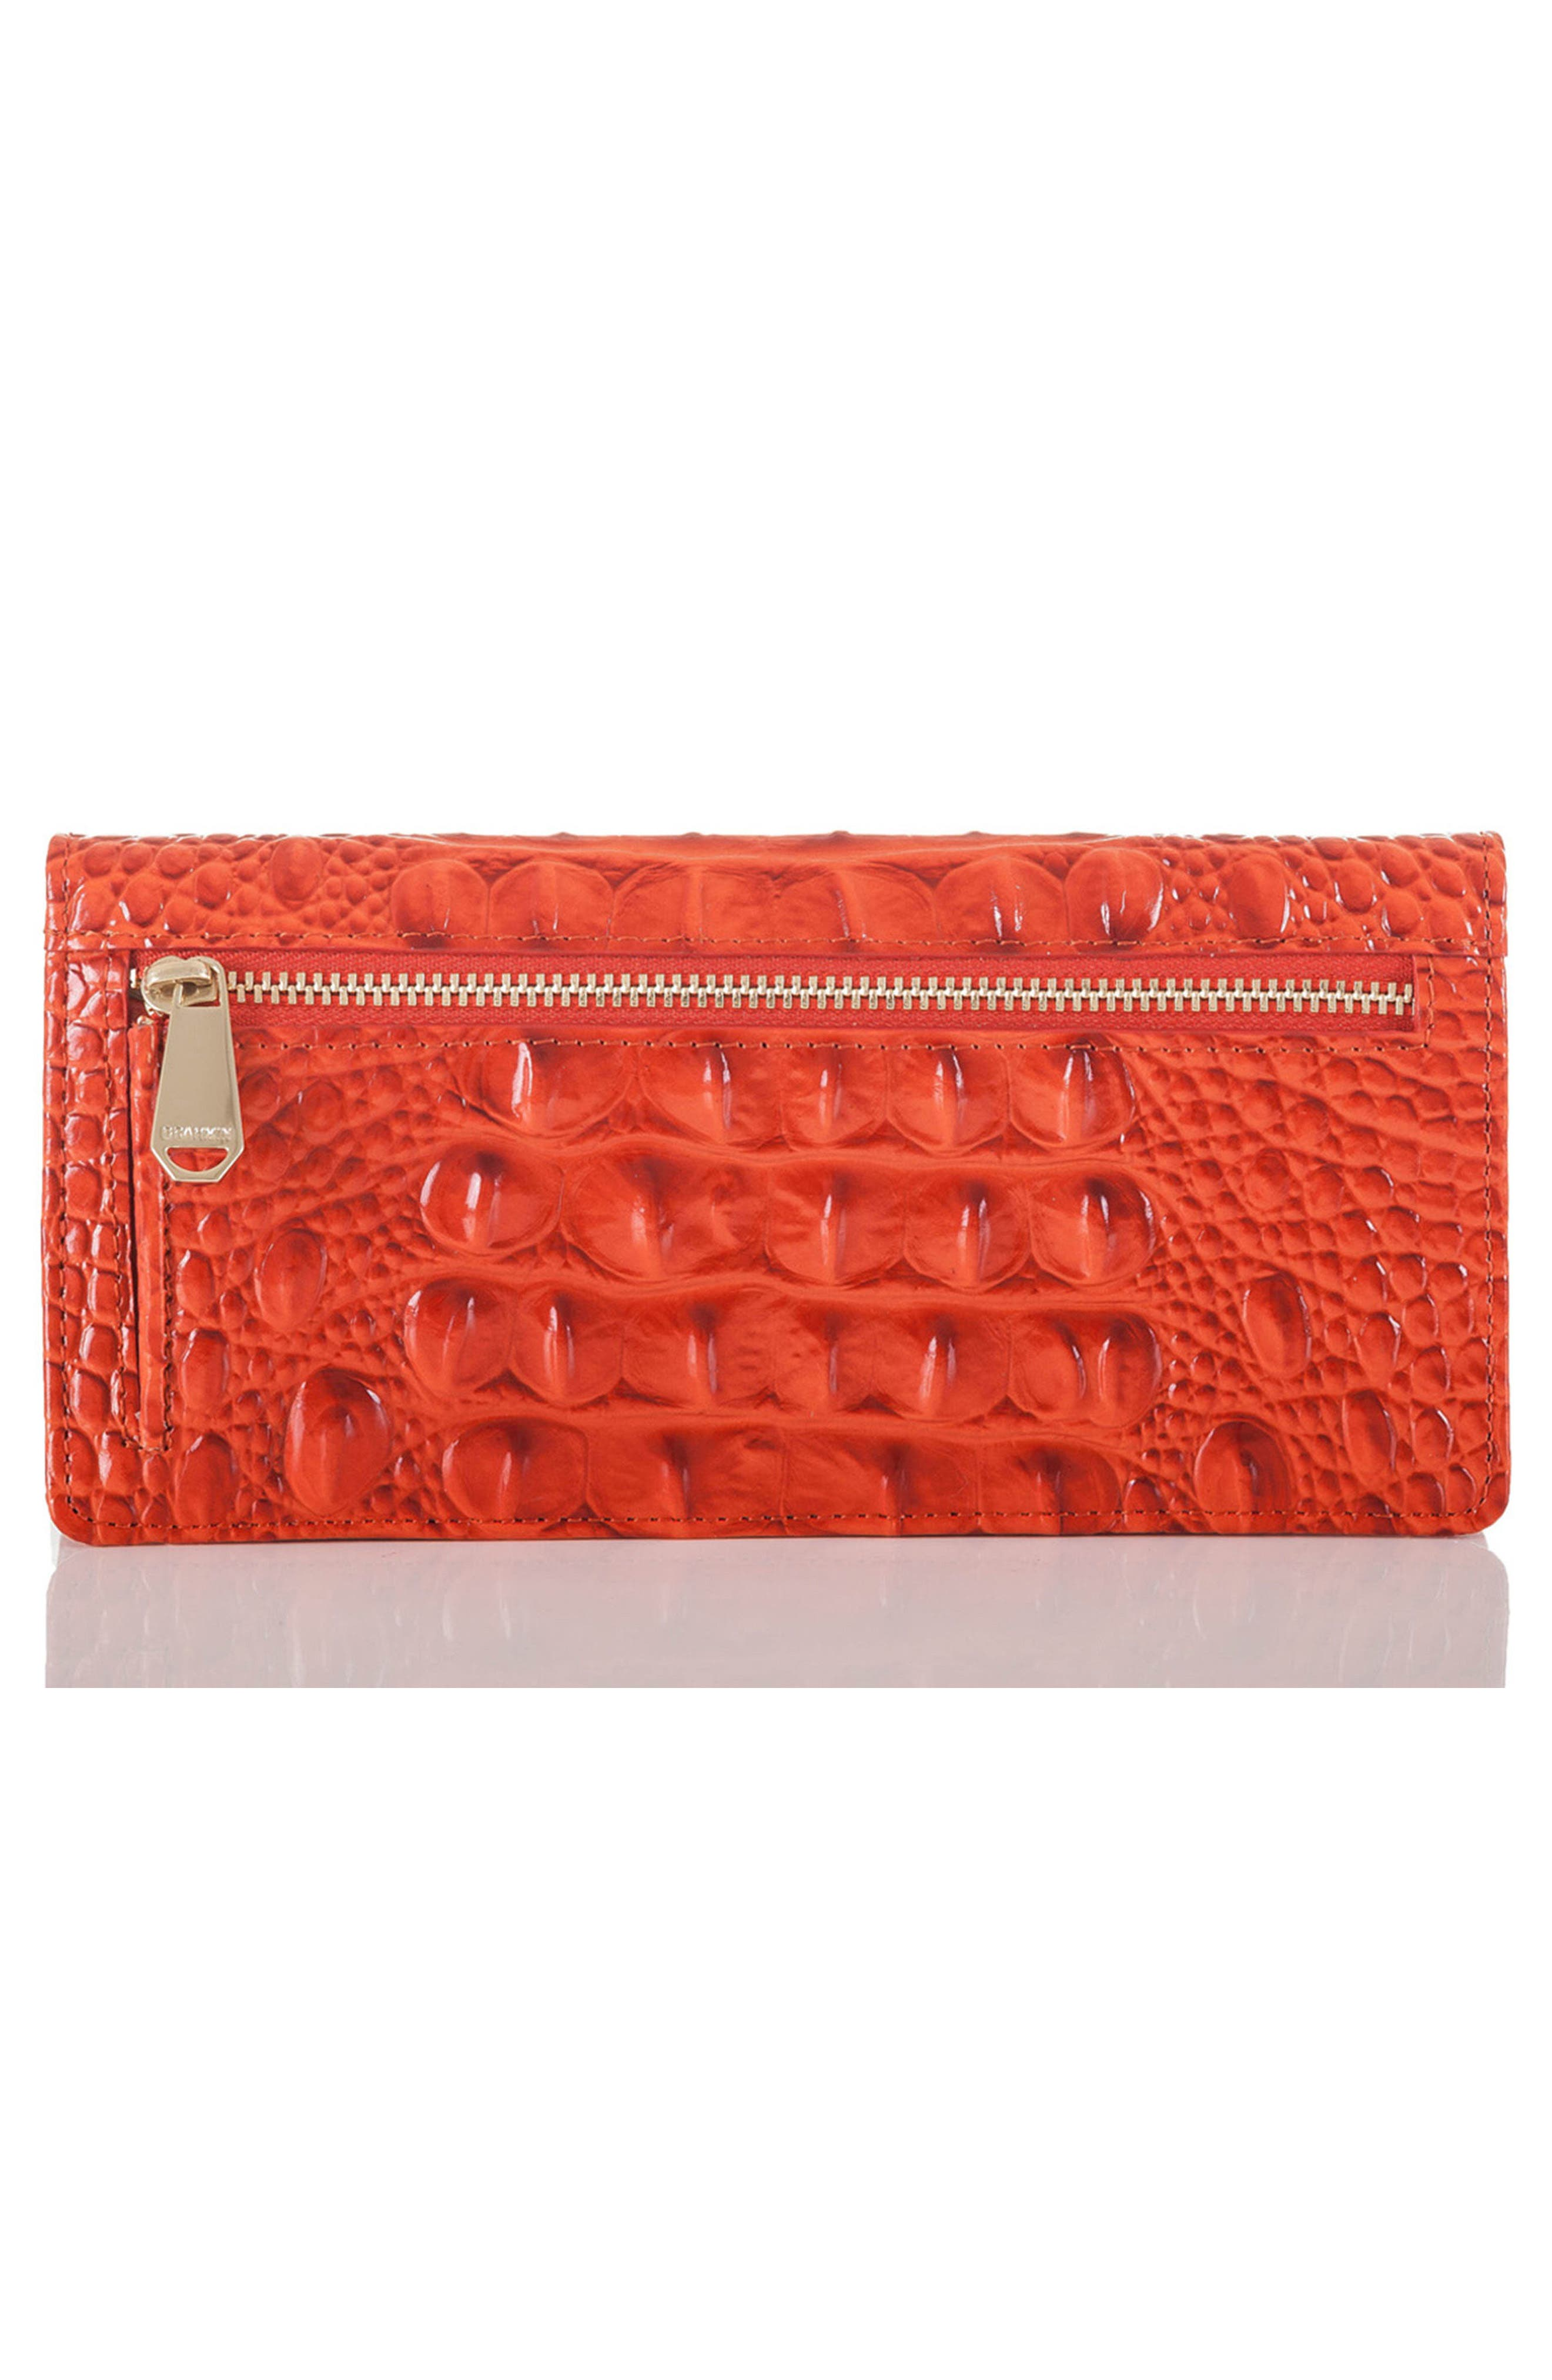 'Ady' Croc Embossed Continental Wallet,                             Alternate thumbnail 2, color,                             AMARYLLIS